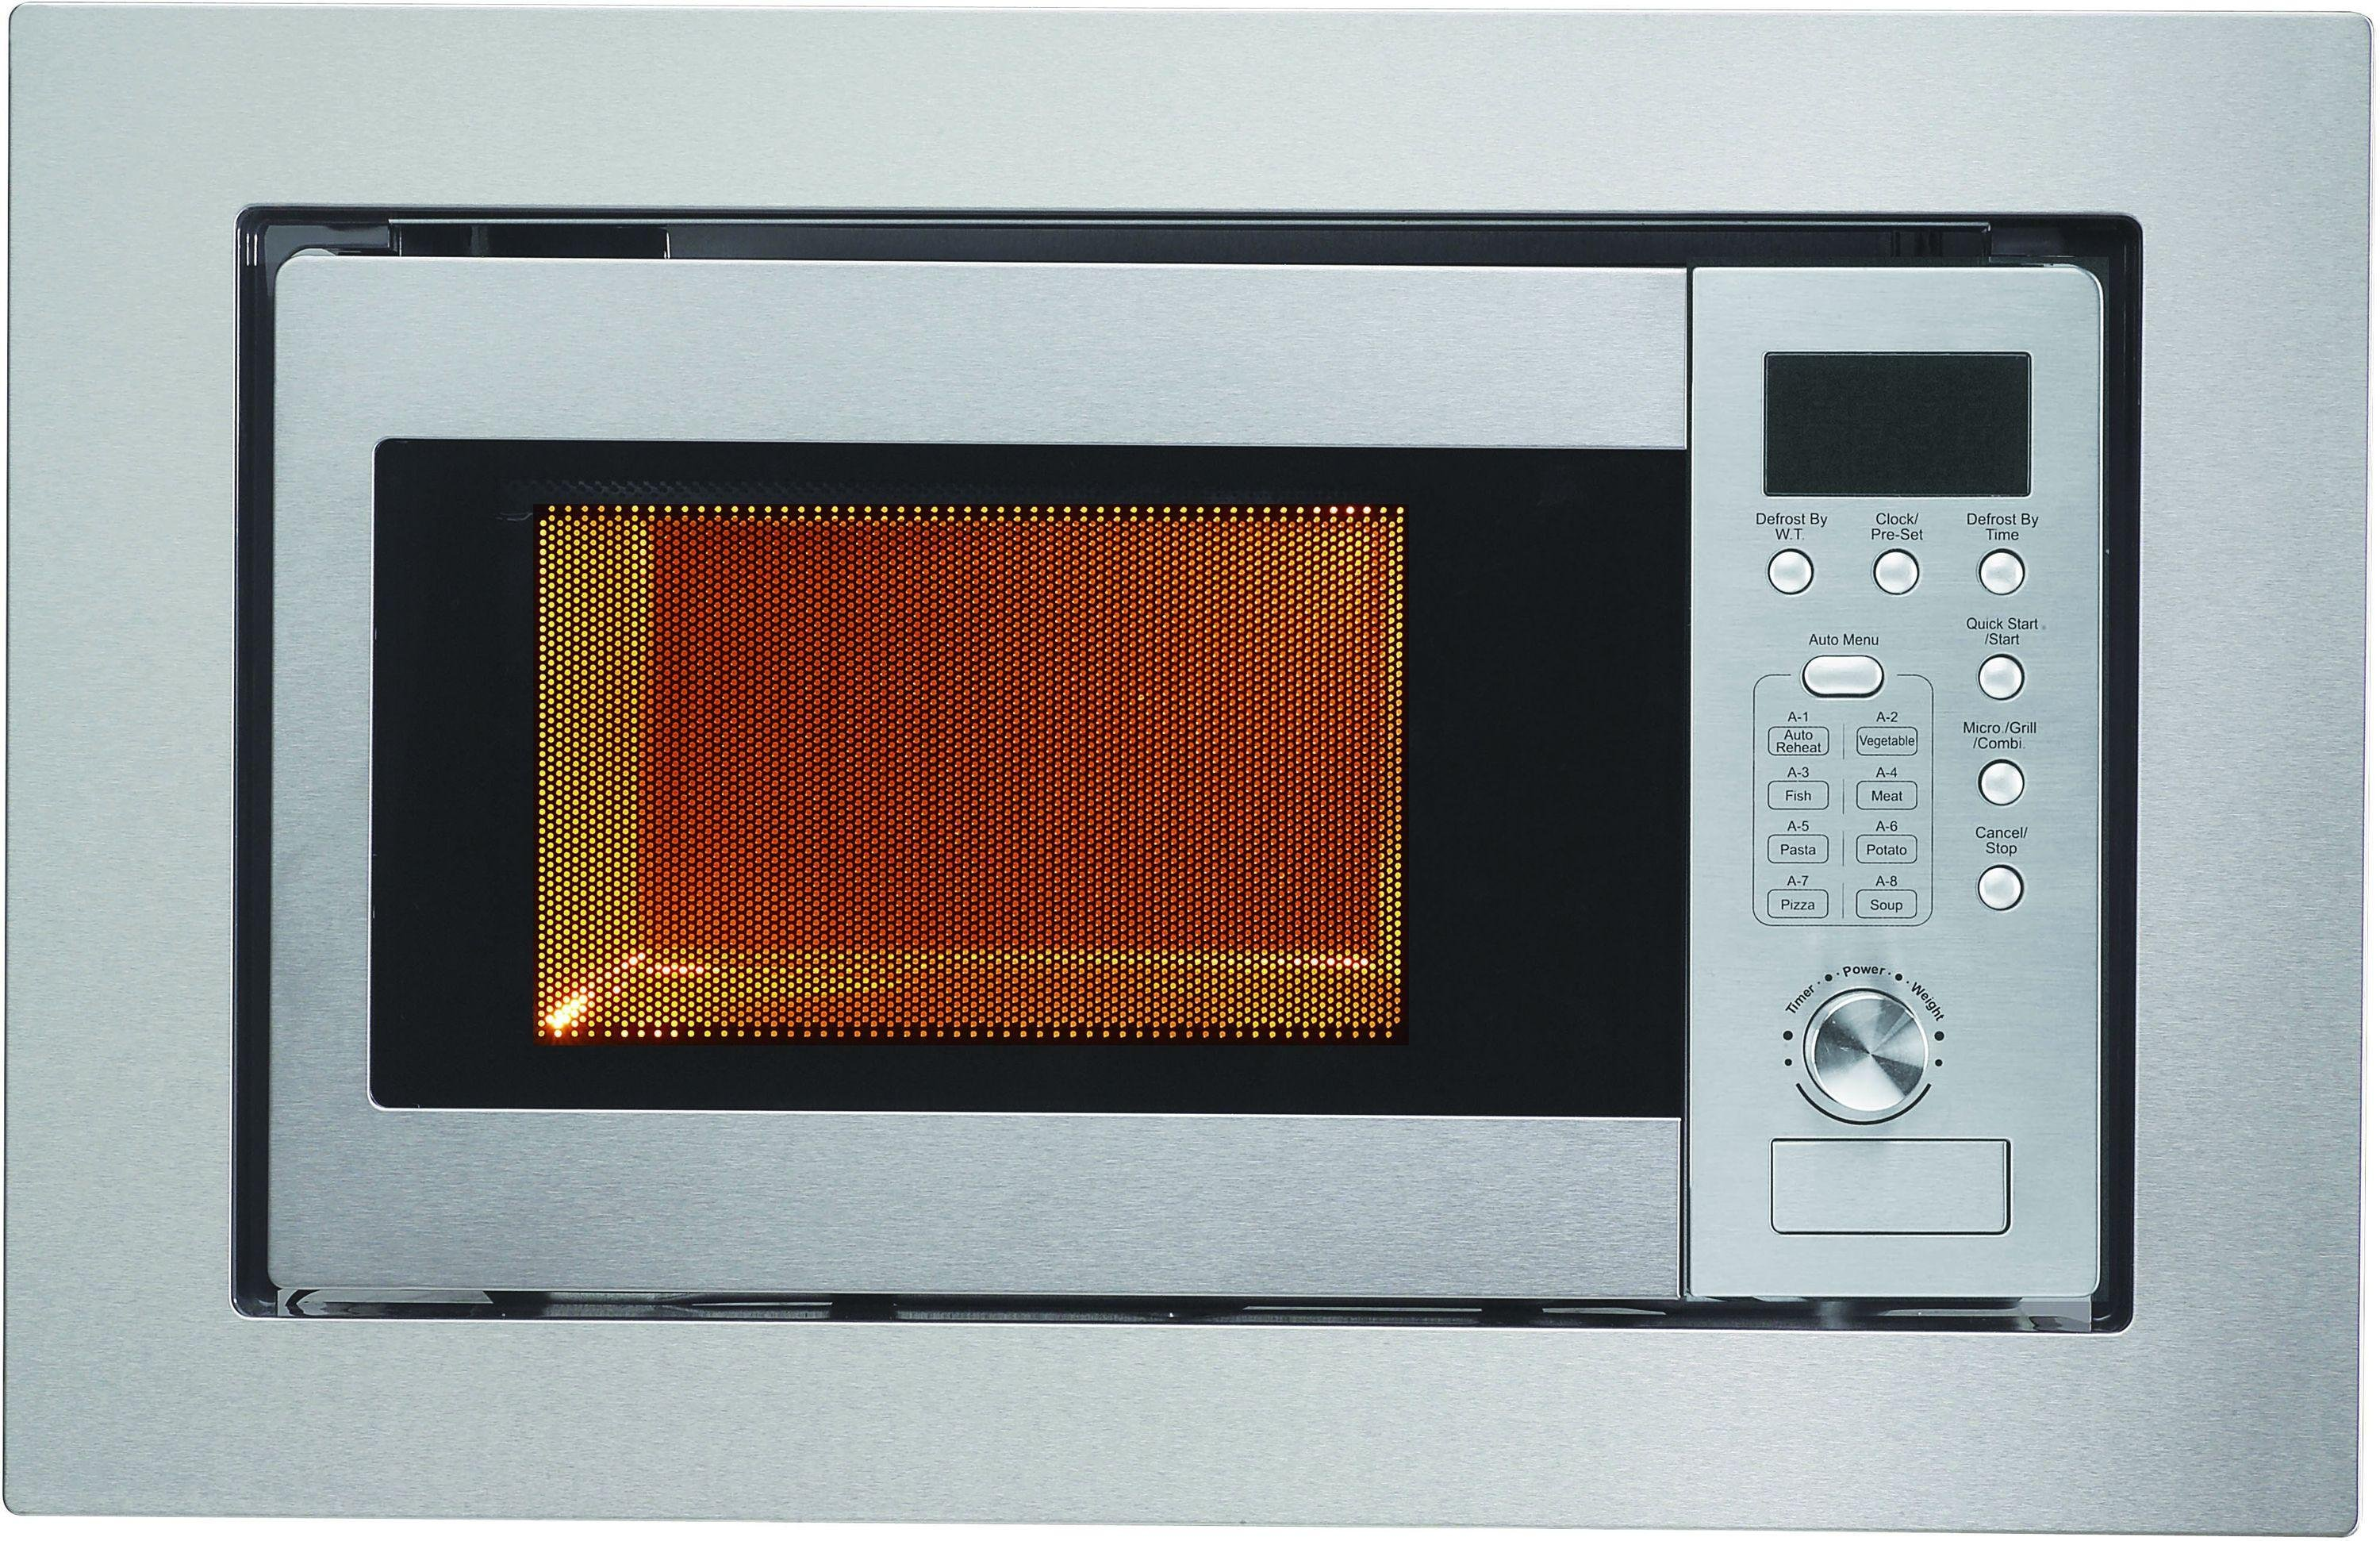 Integrated Microwave Uwm60 Integrated Microwave Stainless Steel Review